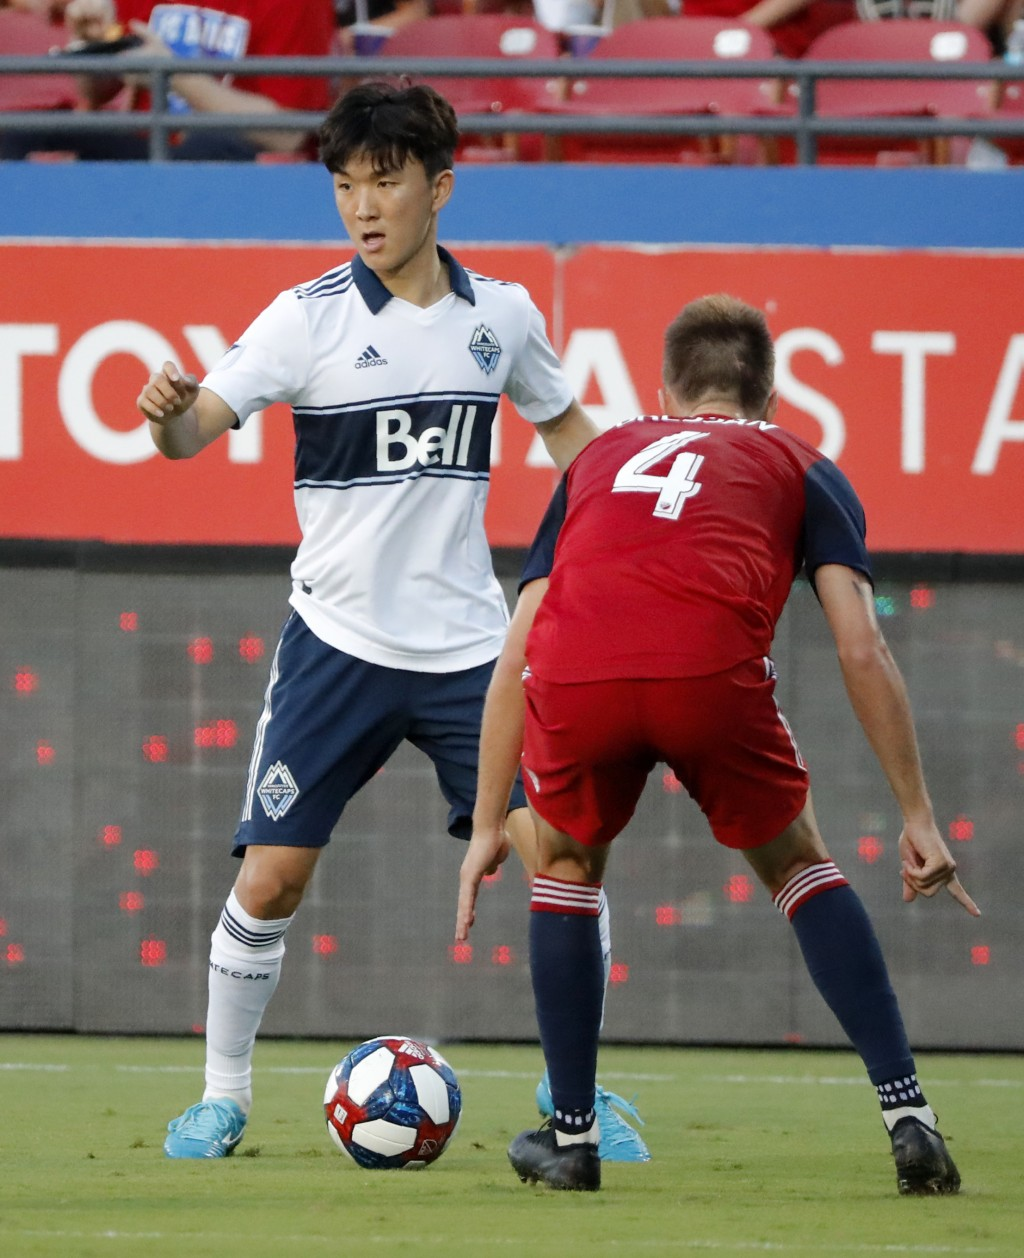 Vancouver Whitecaps's Inbeom Hwang (4) works to make a pass as FC Dallas' Bressan (4) defends during the first half of an MLS soccer match in Frisco, ...